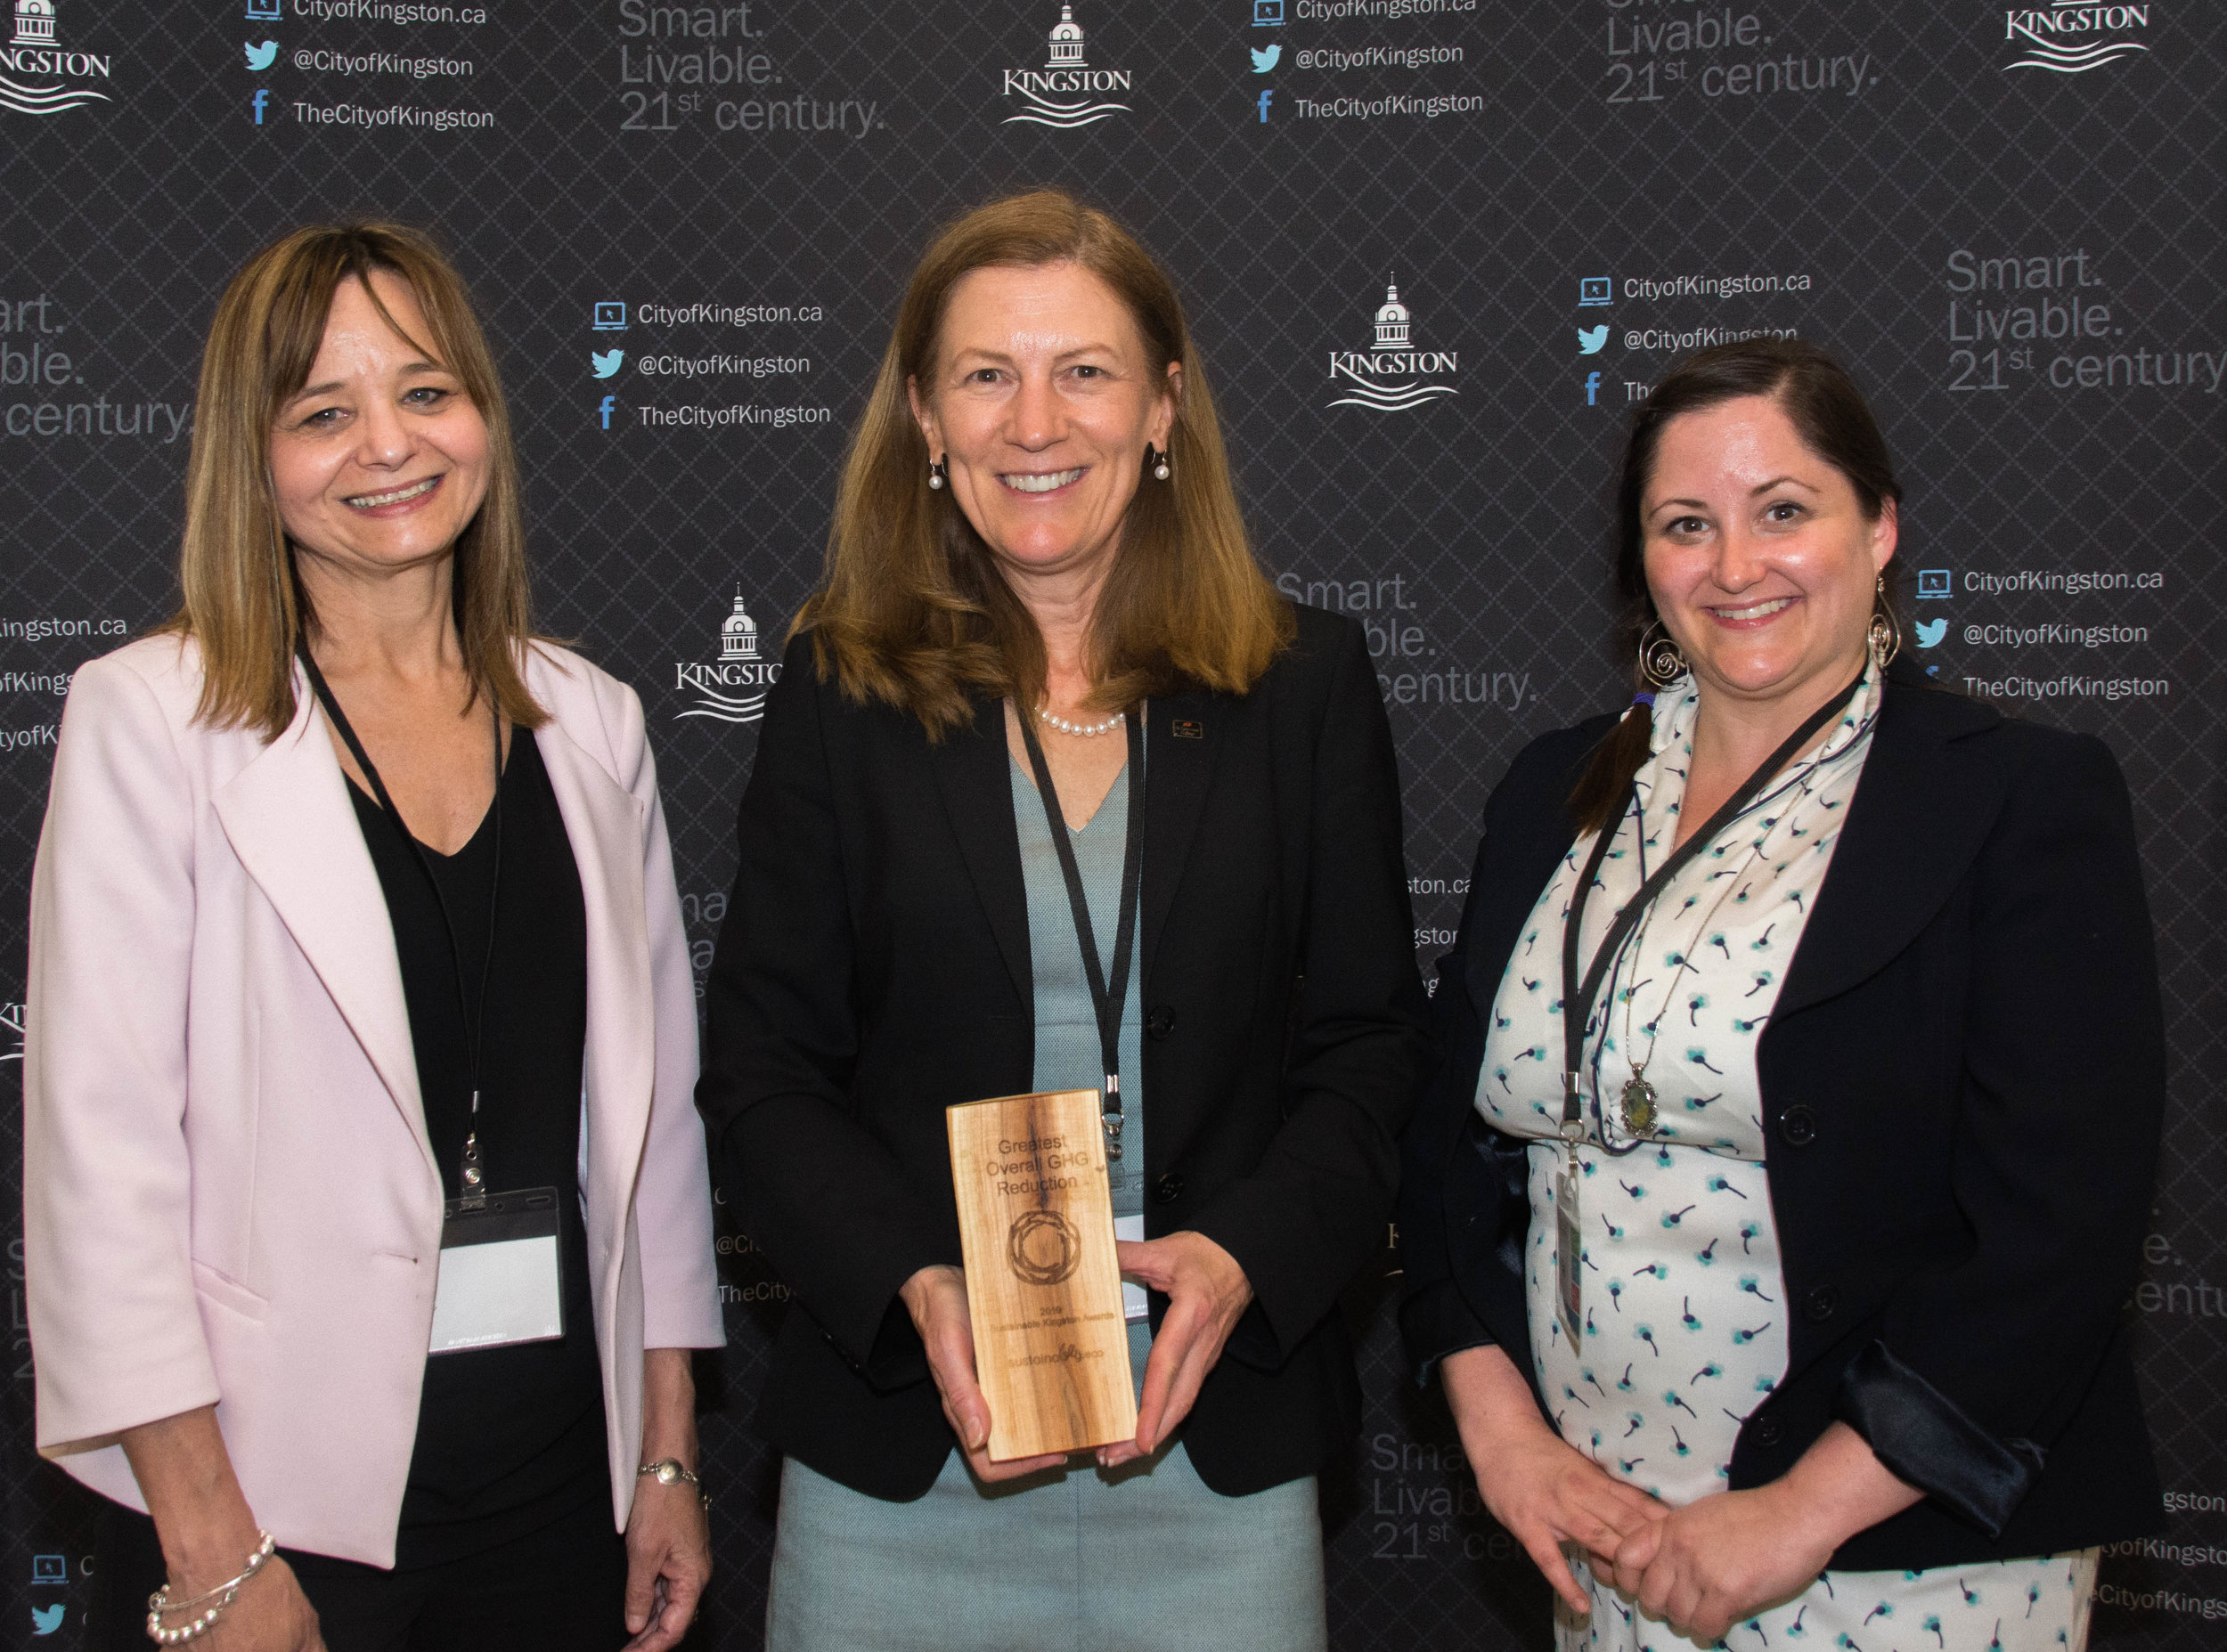 St. Lawrence College Wins Sustainability Award